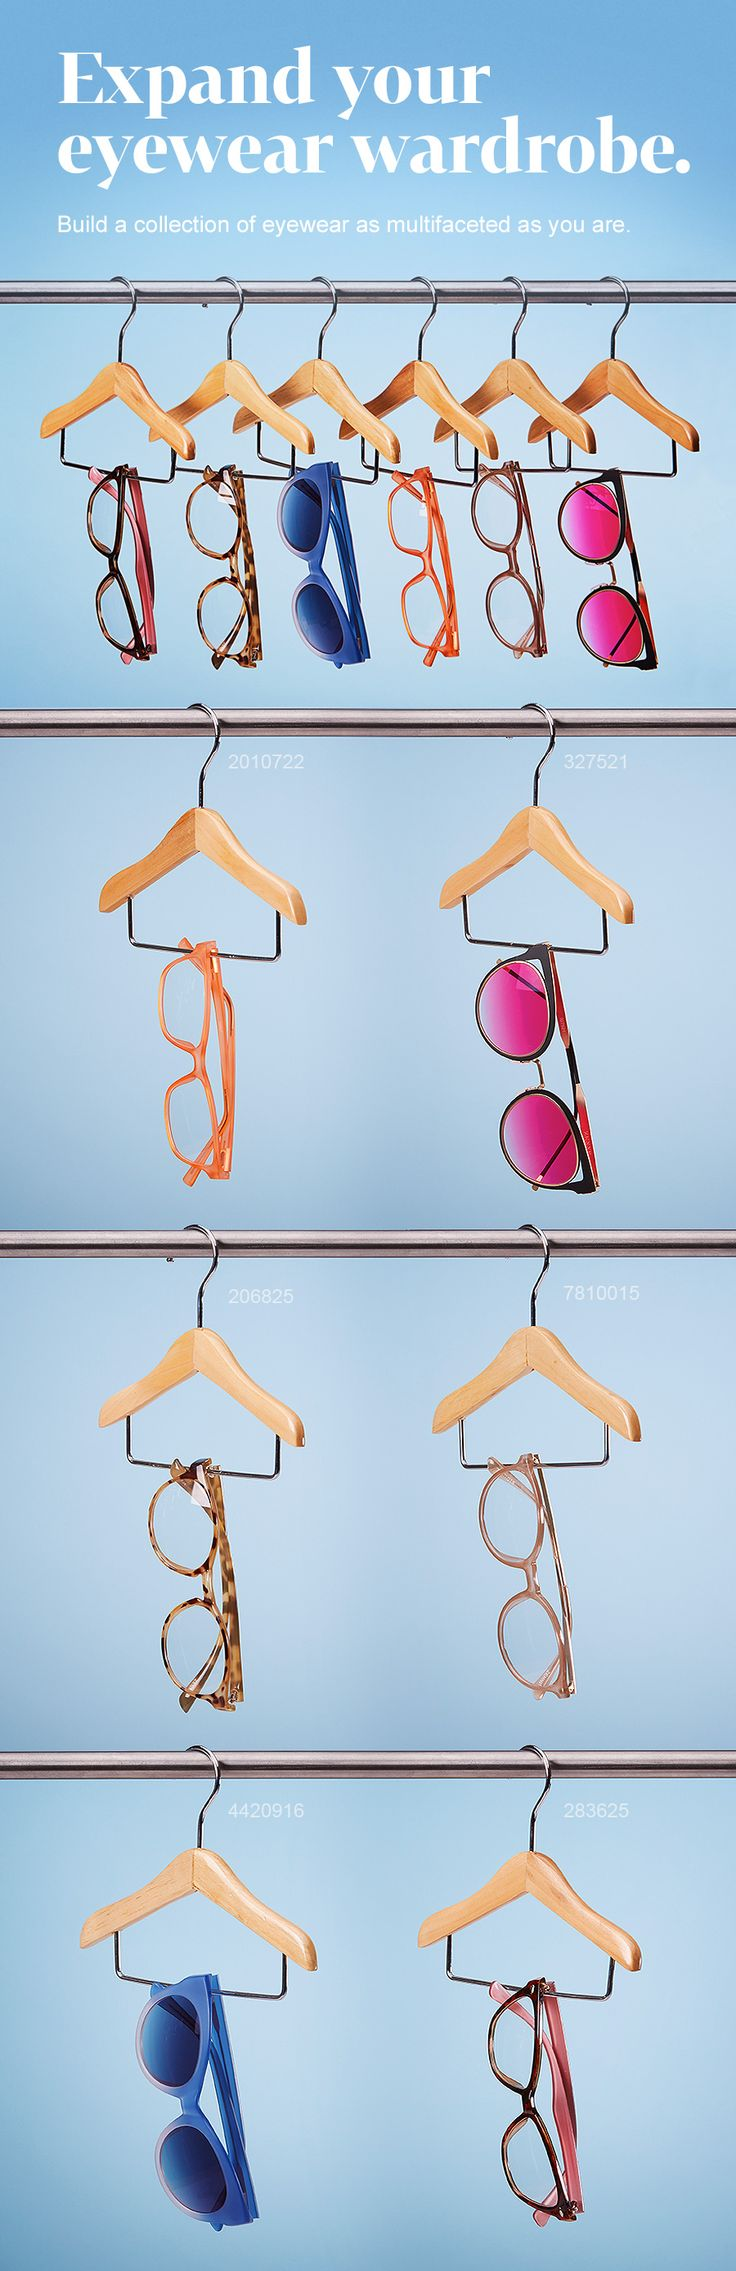 Find the perfect pair of eyewear for every version of you. What's in your eyewear wardrobe?